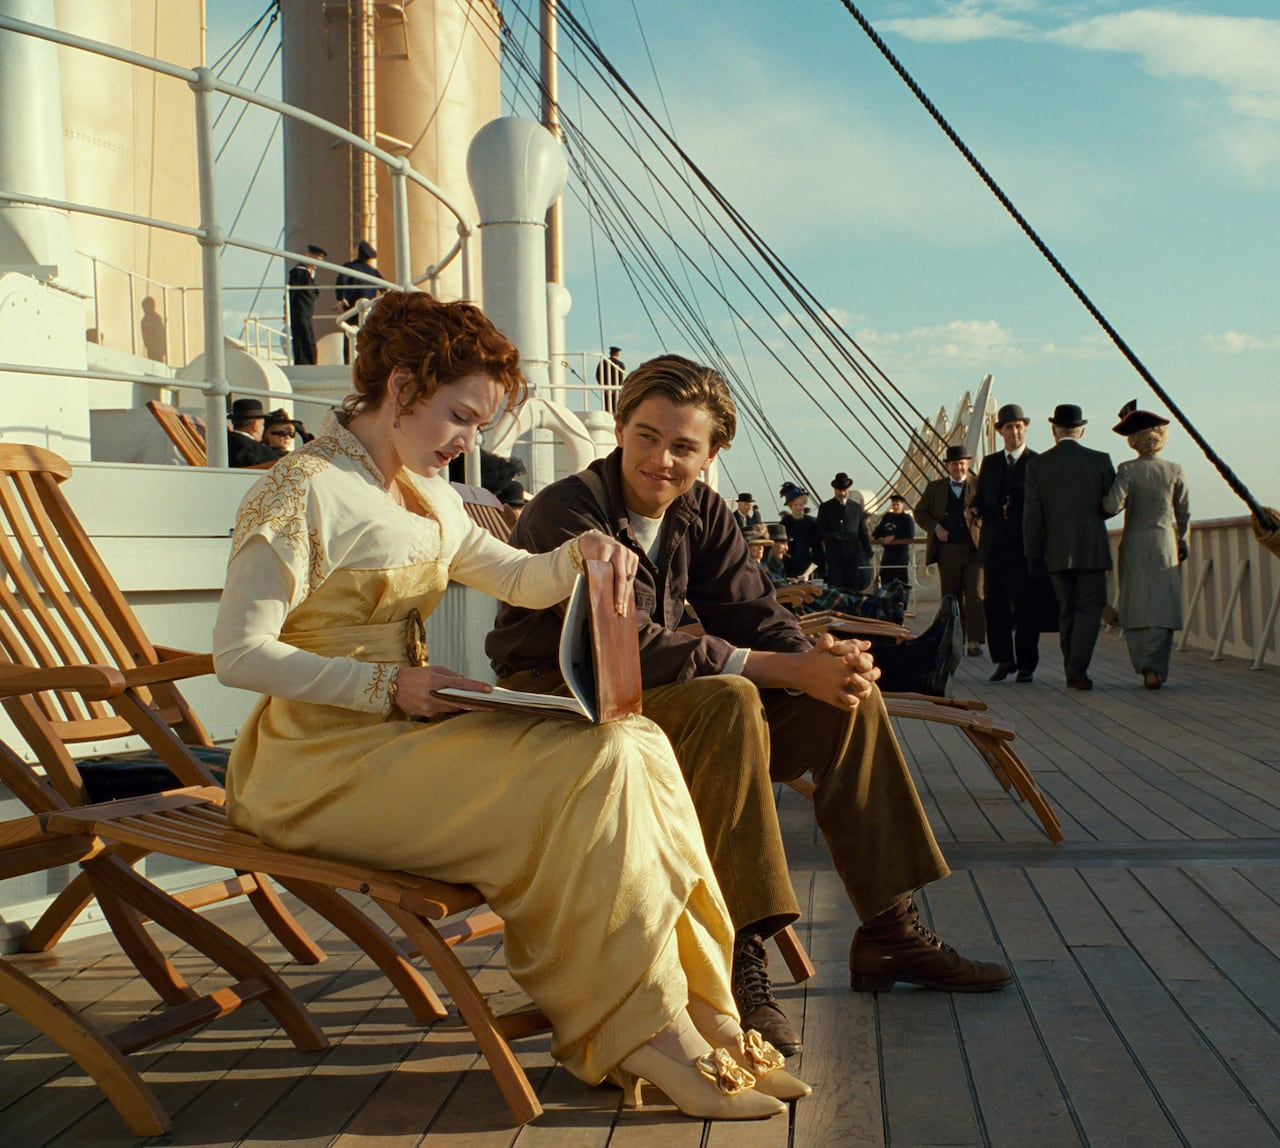 Titanic anniversary: 20 fascinating facts about the epic